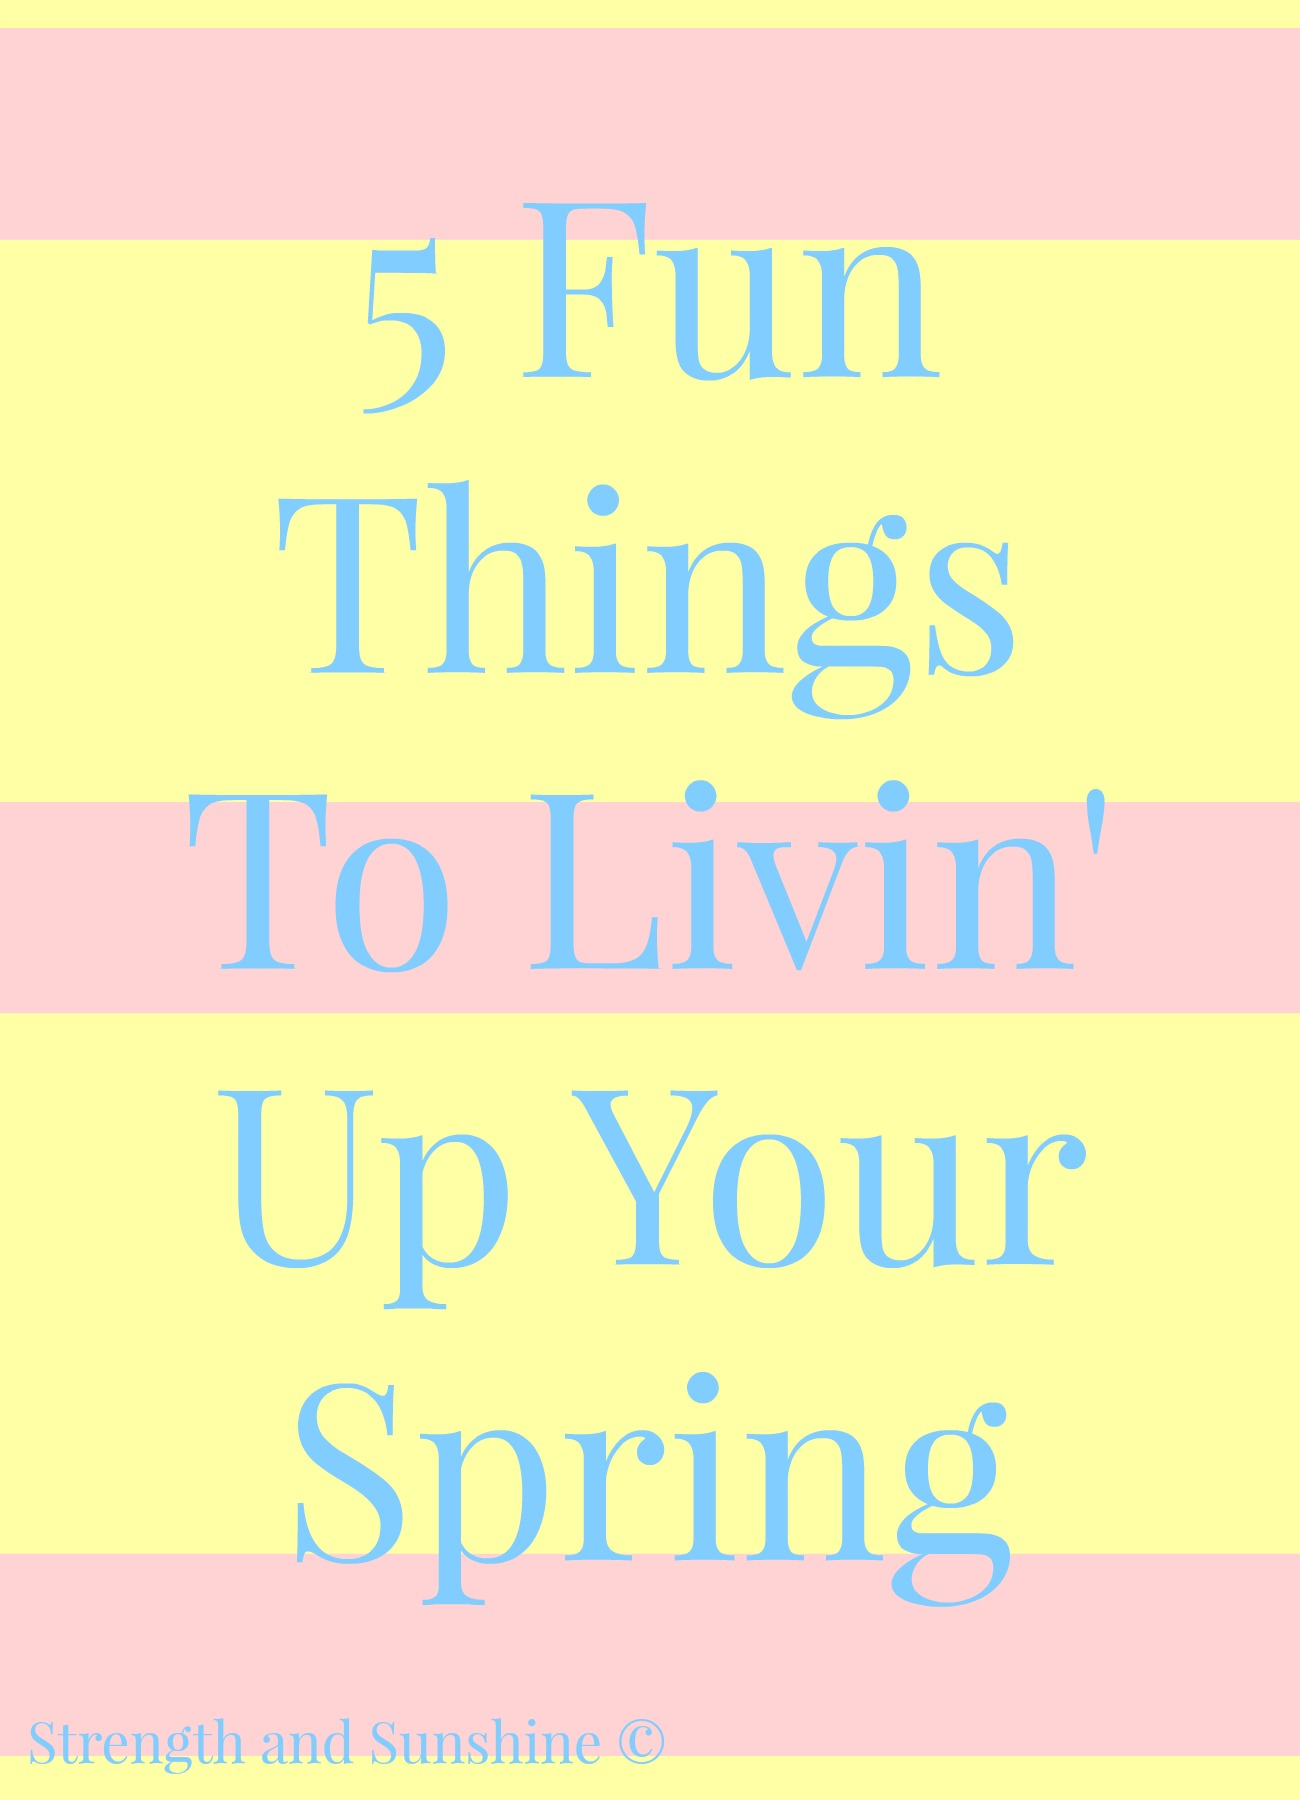 5 Fun Things To Livin' Up Your Spring | Strength and Sunshine @RebeccaGF666 #spring